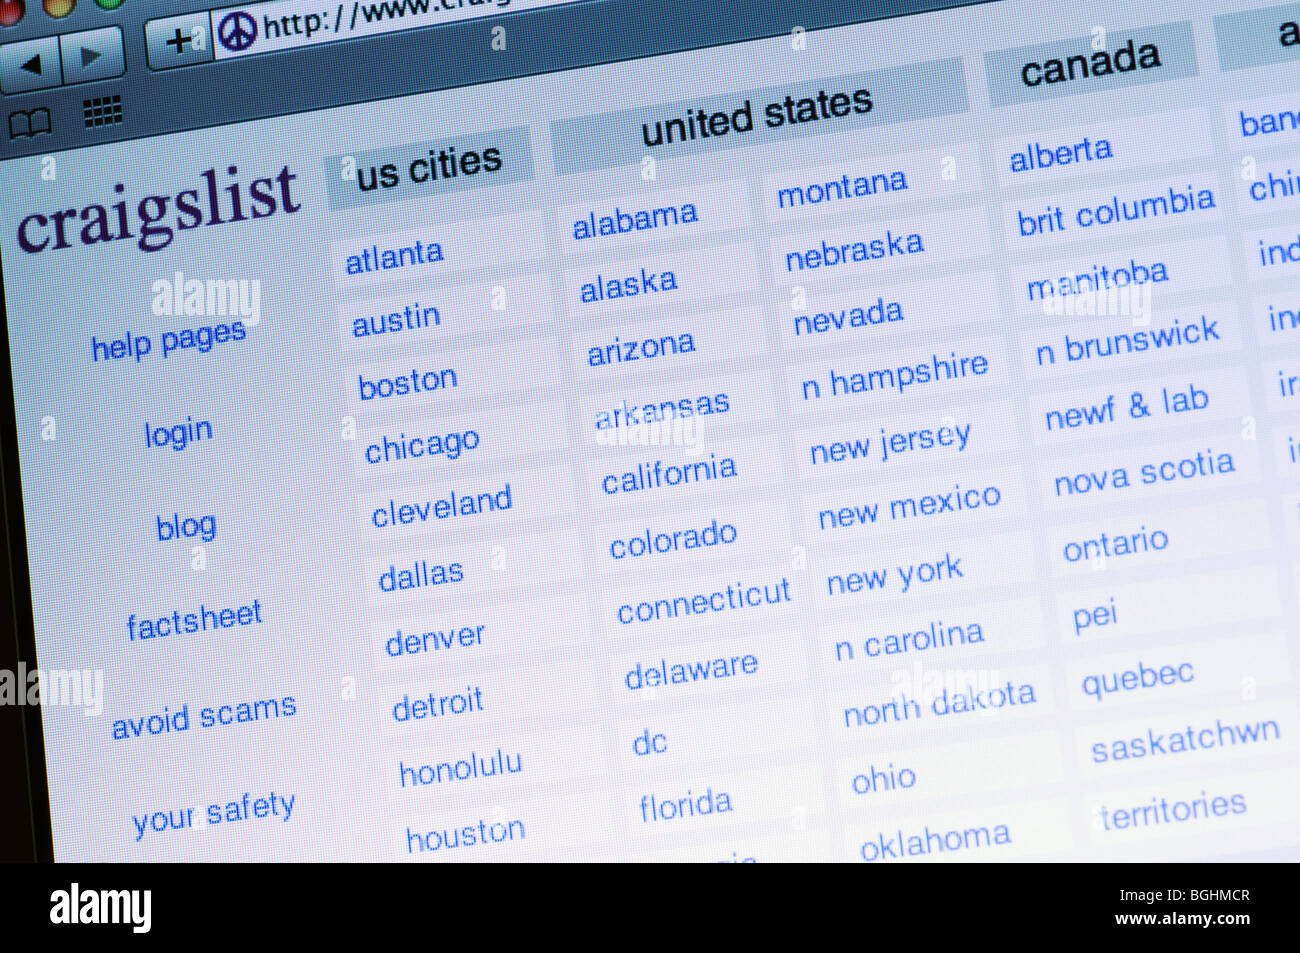 Craigslist Stock Photos & Craigslist Stock Images - Alamy